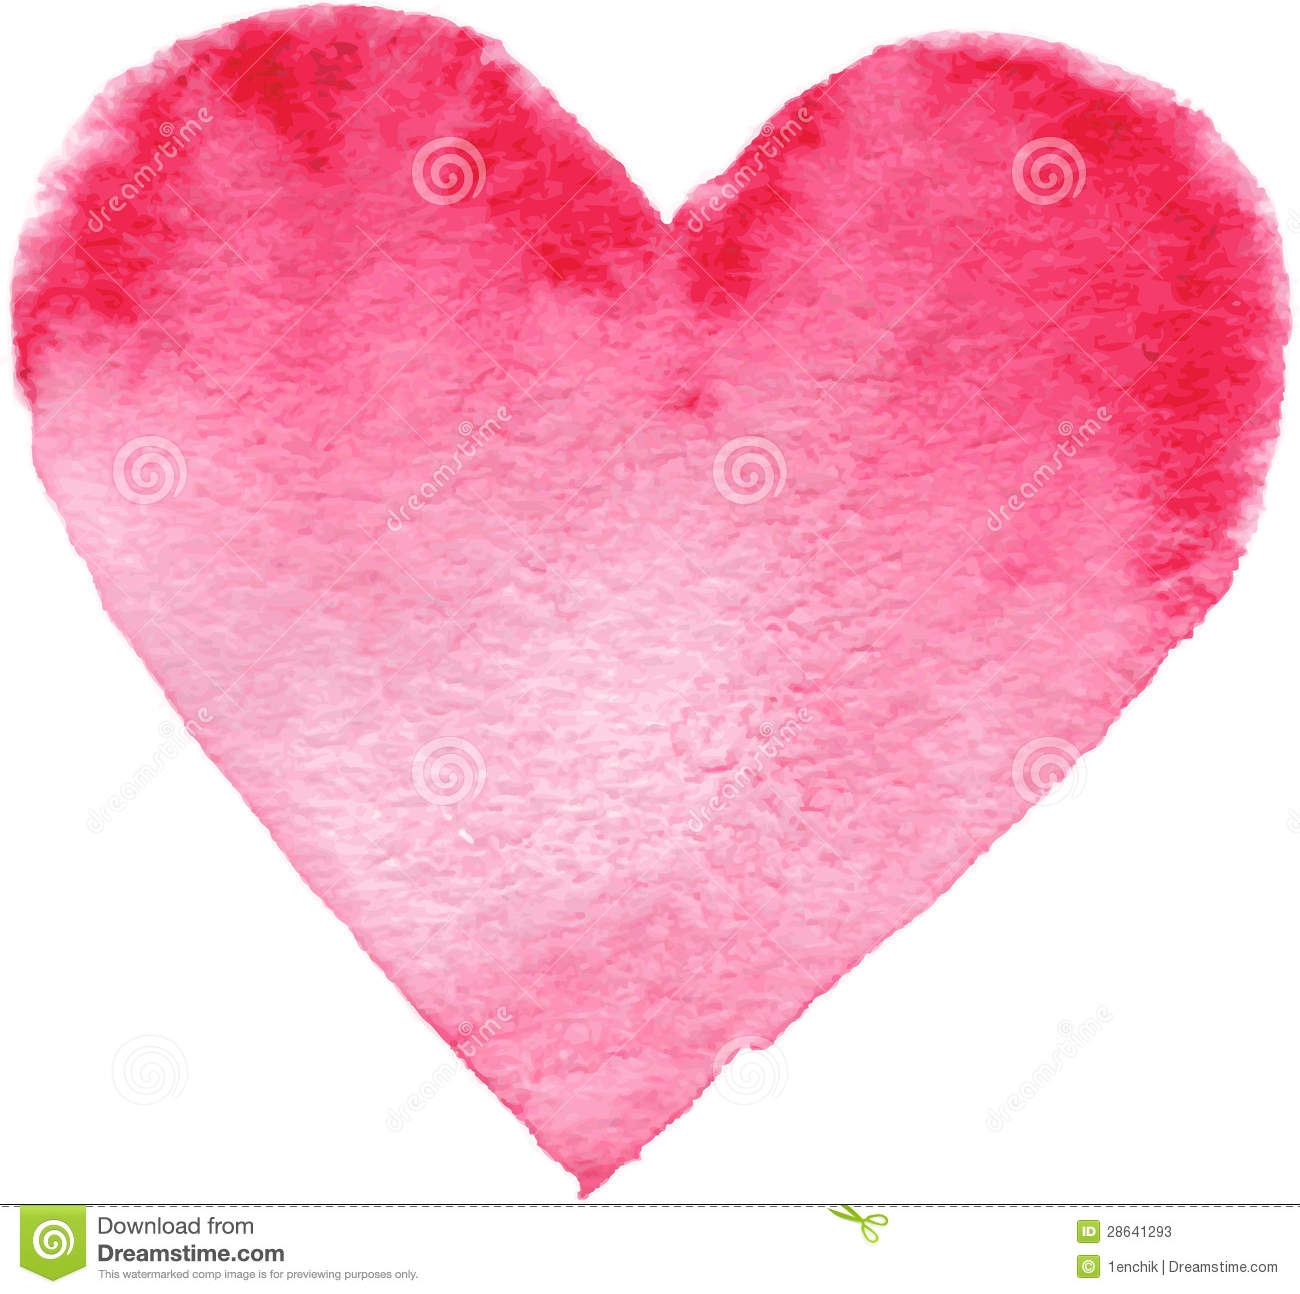 Drawn hearts pink Hand (56+) Drawn clipart Clipart